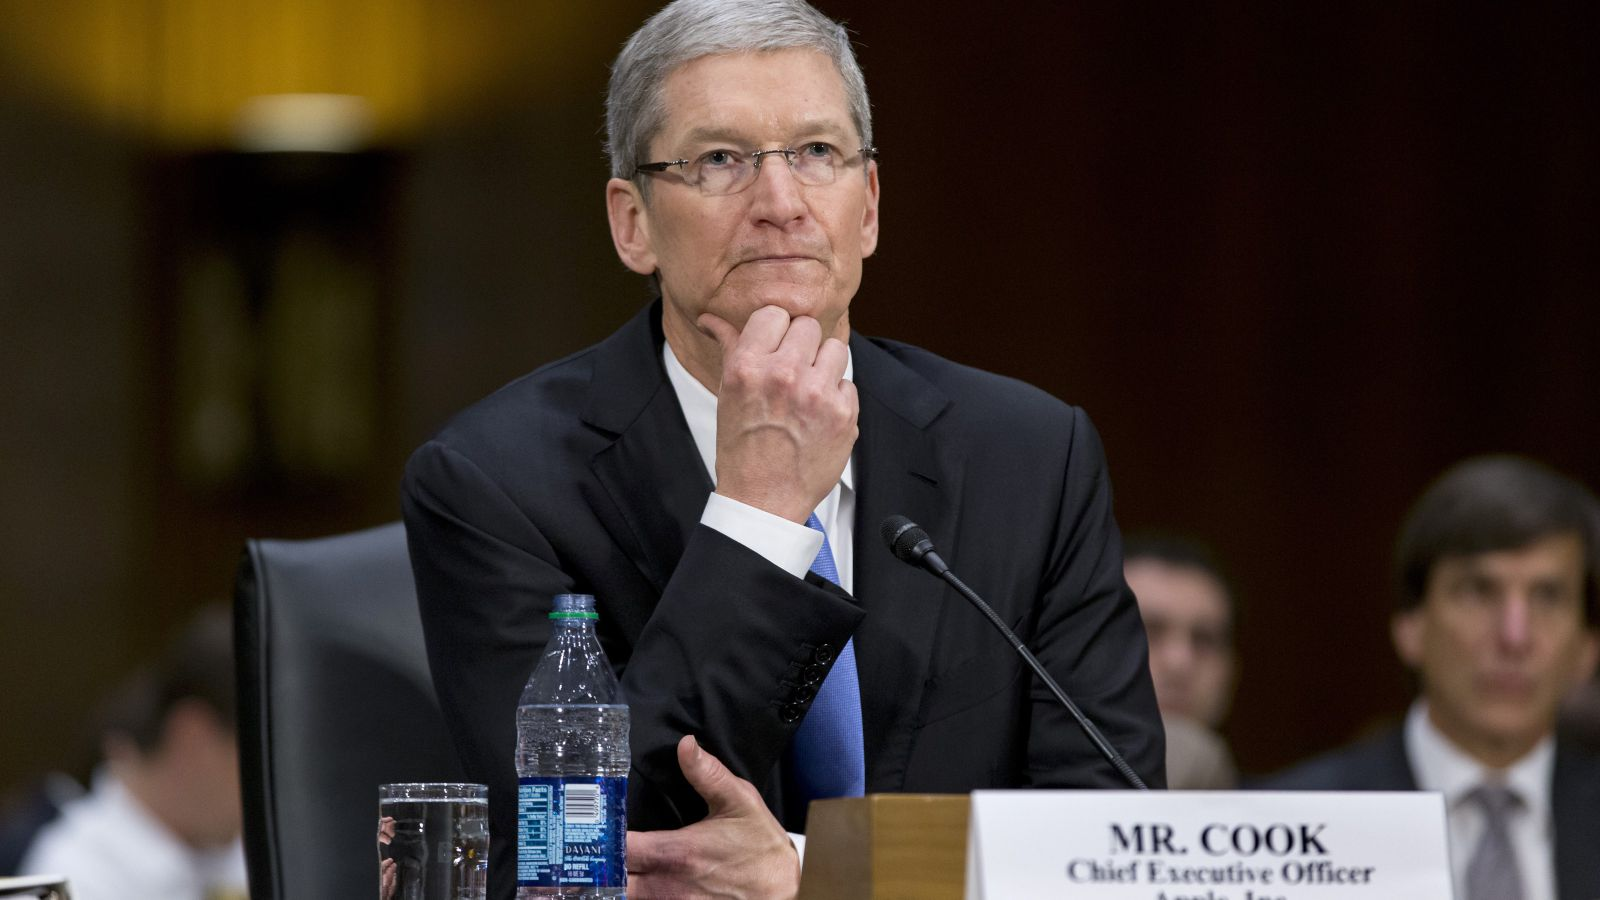 Analysts: Policy Tim cook will take the company